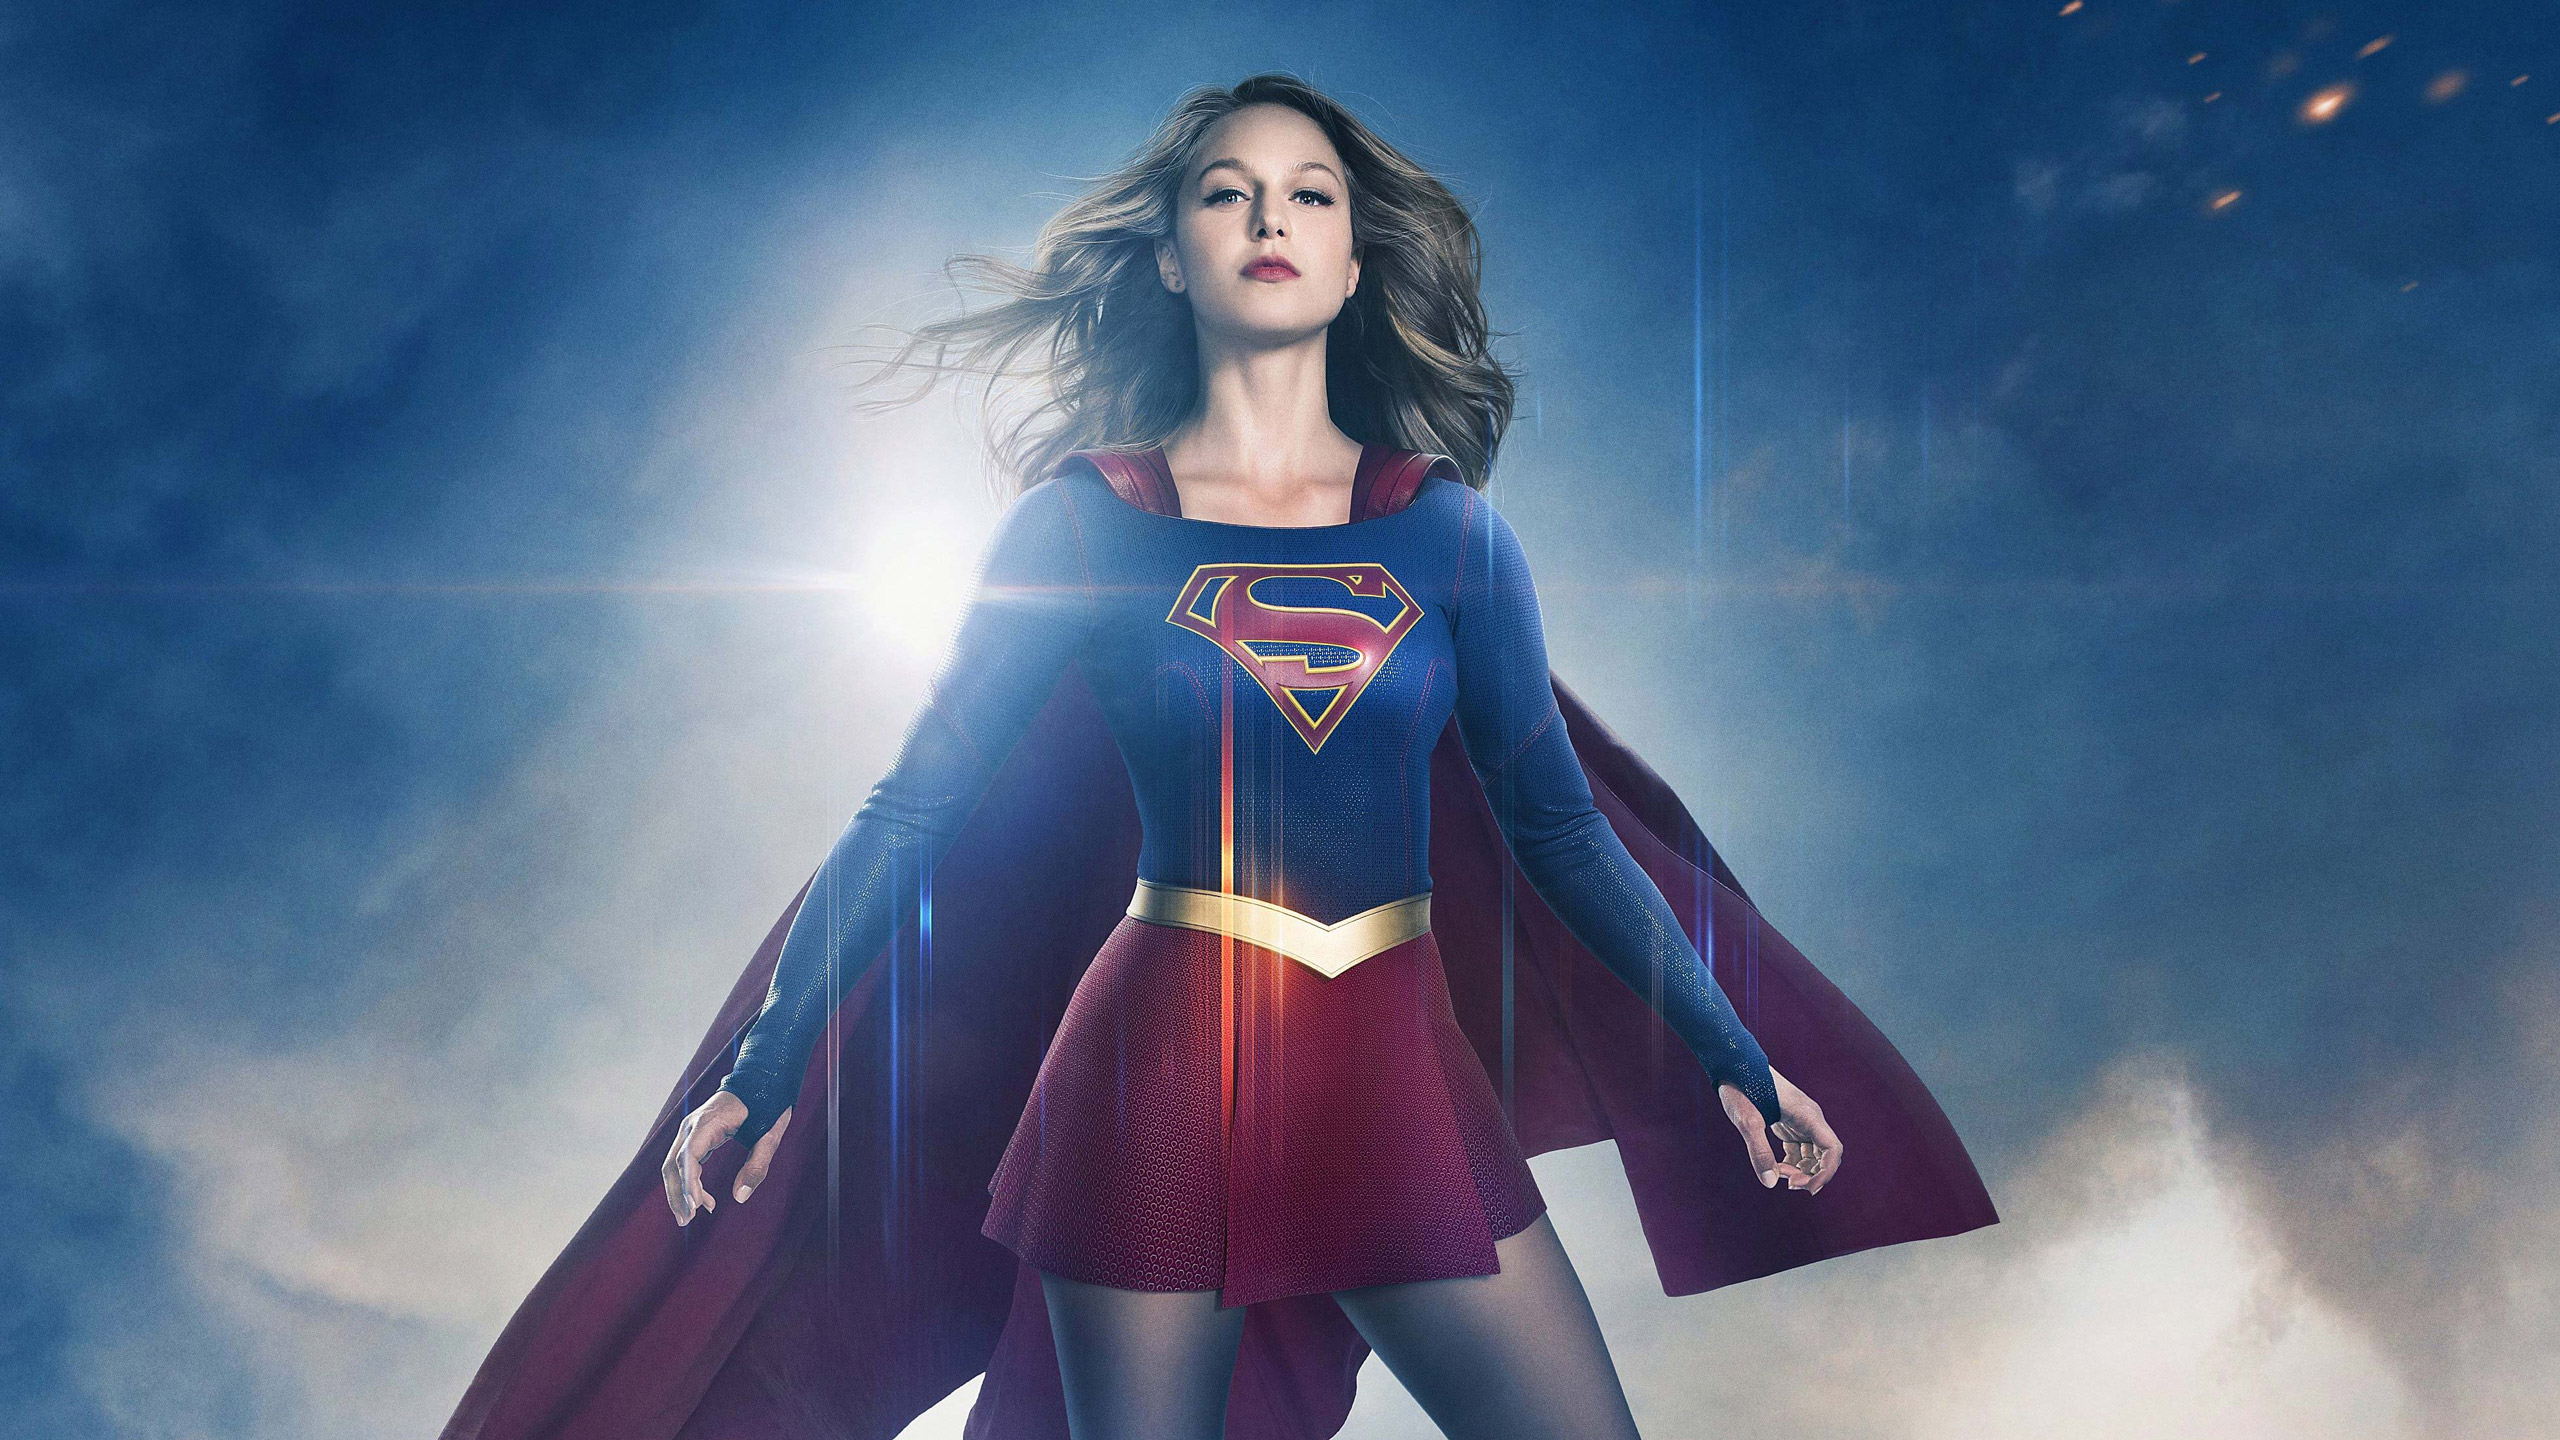 supergirl season2, hd tv shows, 4k wallpapers, images, backgrounds